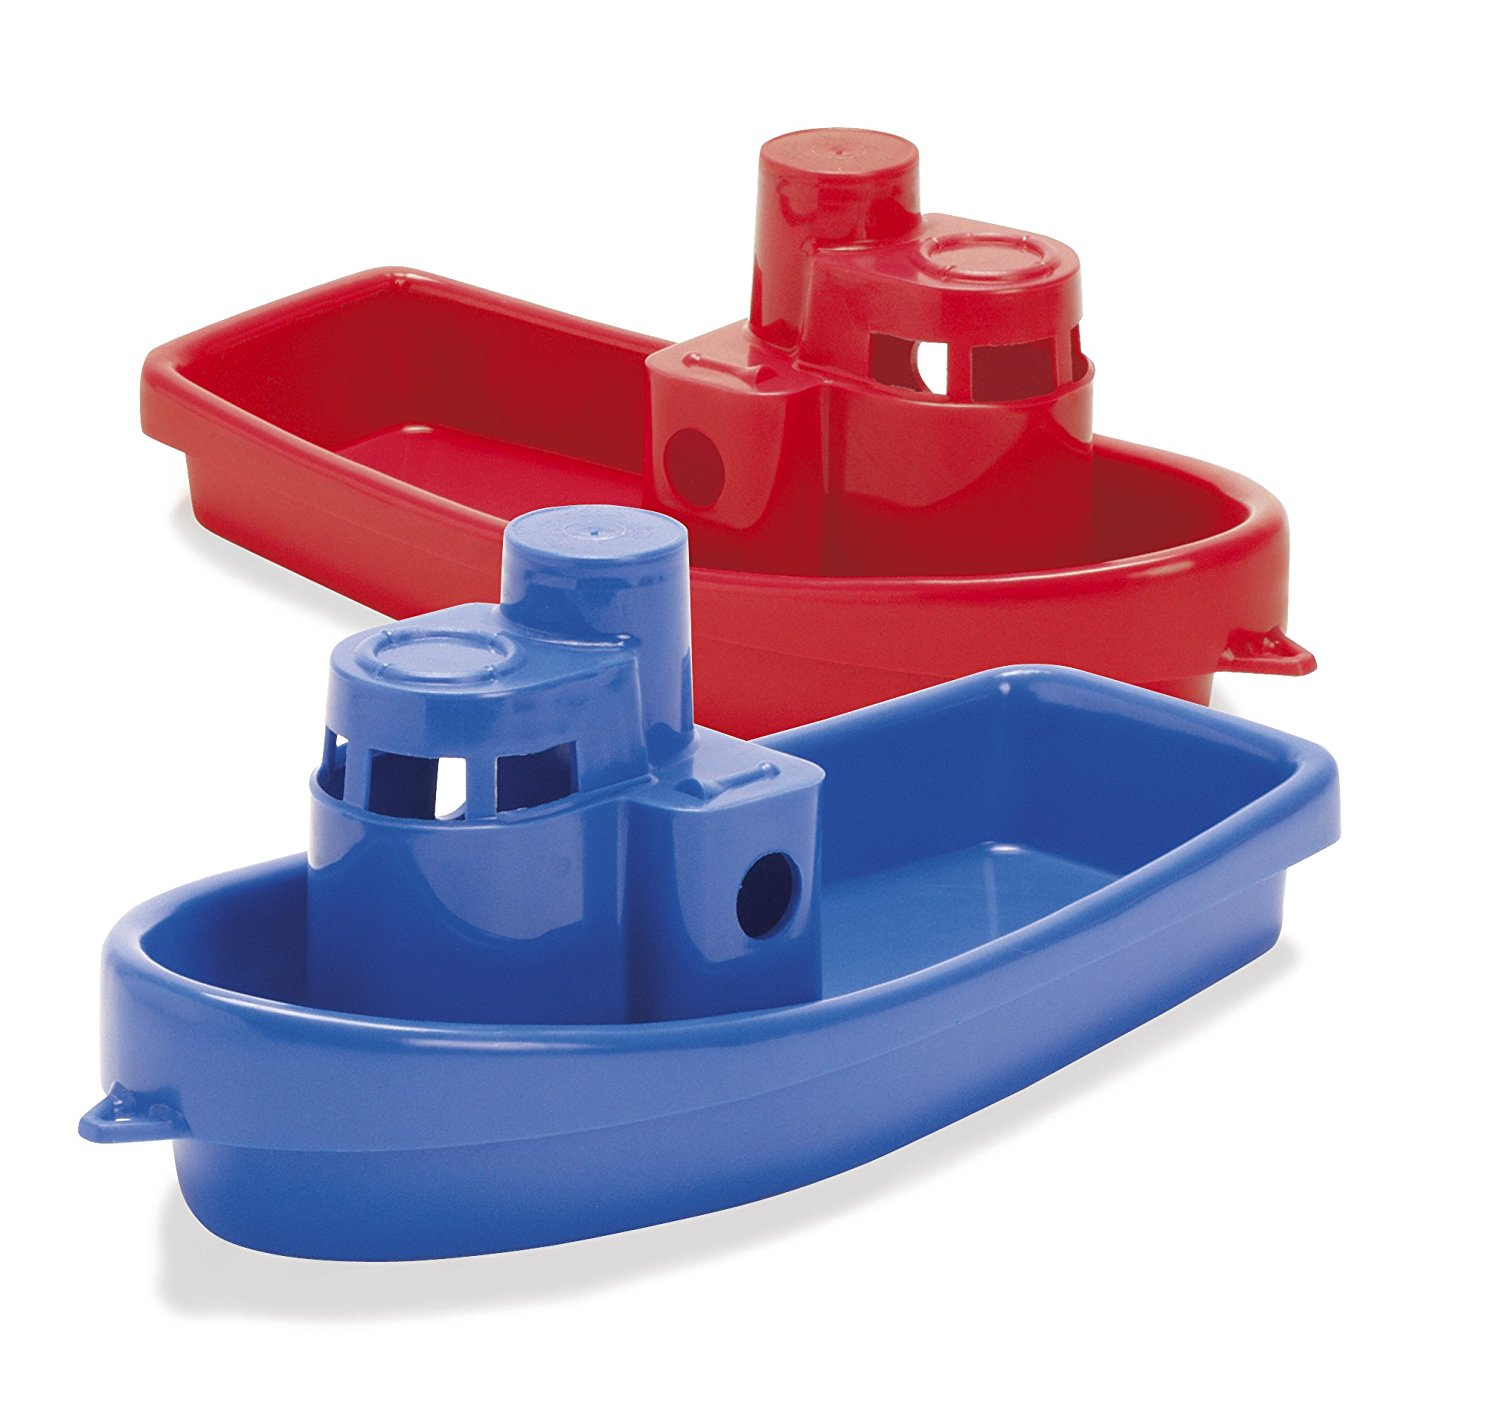 Amazon.com: Dantoy Stacking Tug Boat Color: Red: Toys & Games